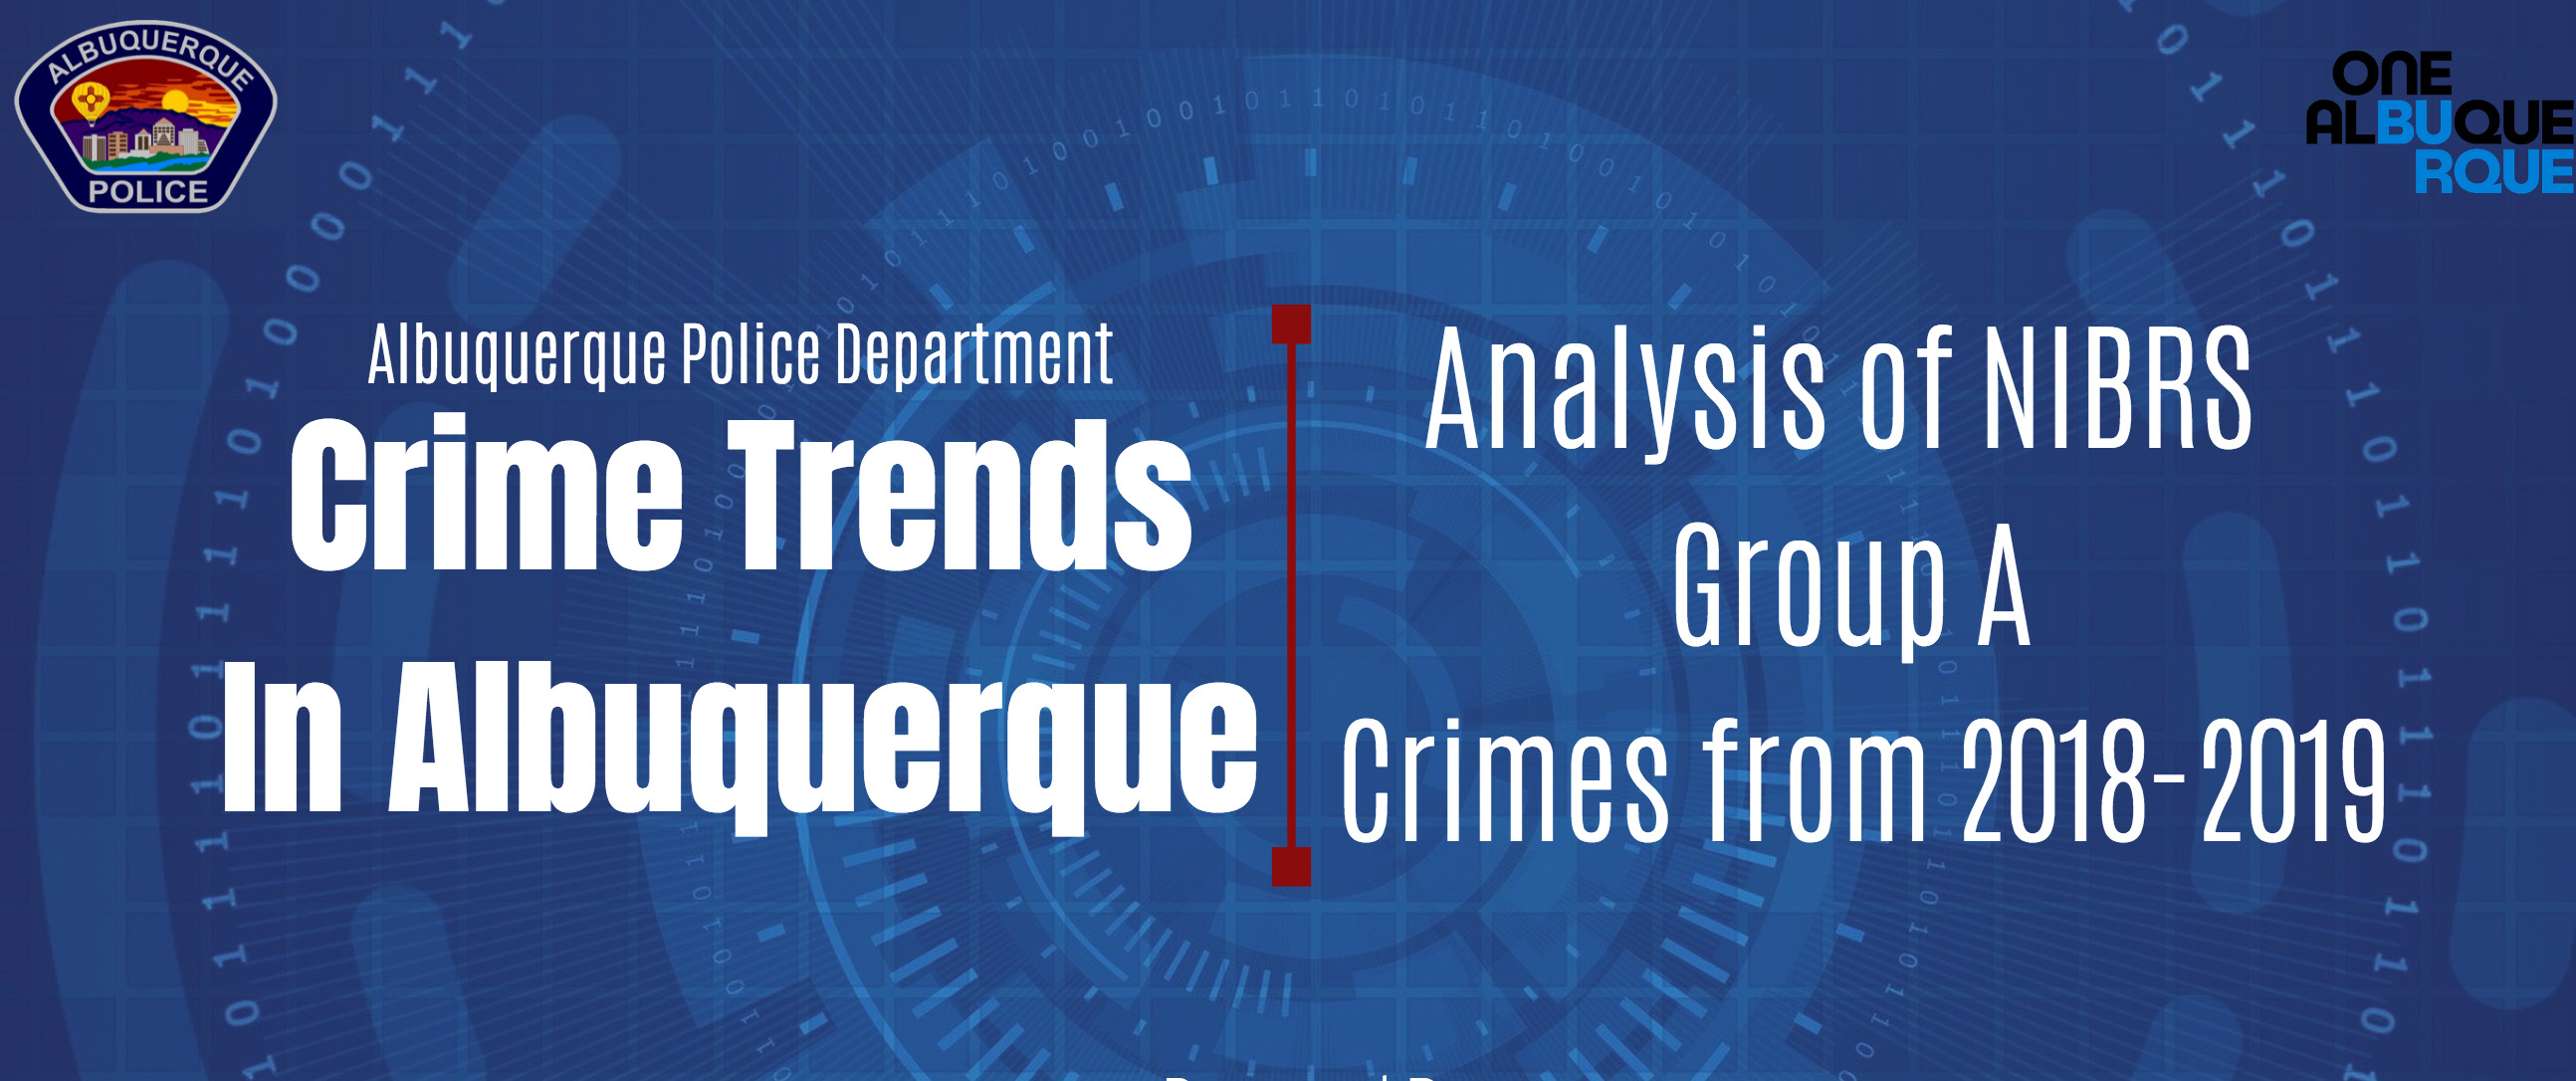 APD Releases 2019 Crime Stats